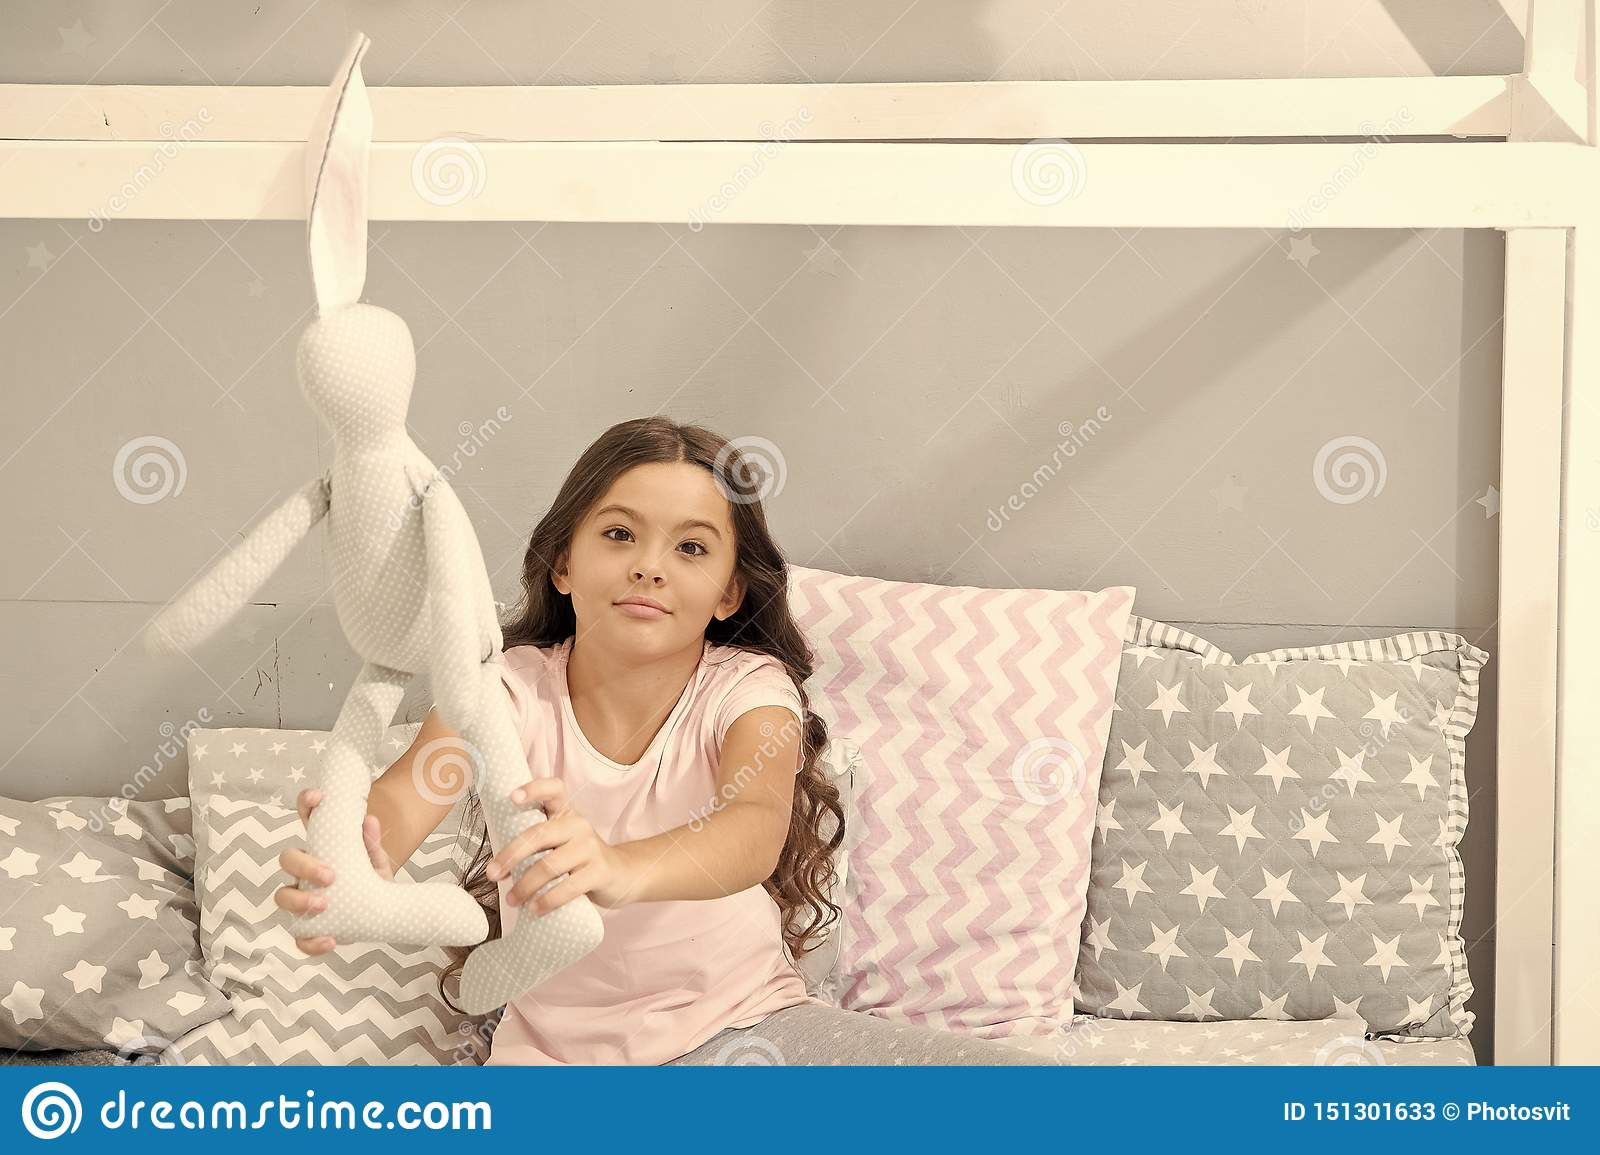 Play soft toy before go sleep. Girl long curly hair enjoy evening time with favorite toy. Kid sit bed and play bunny toy